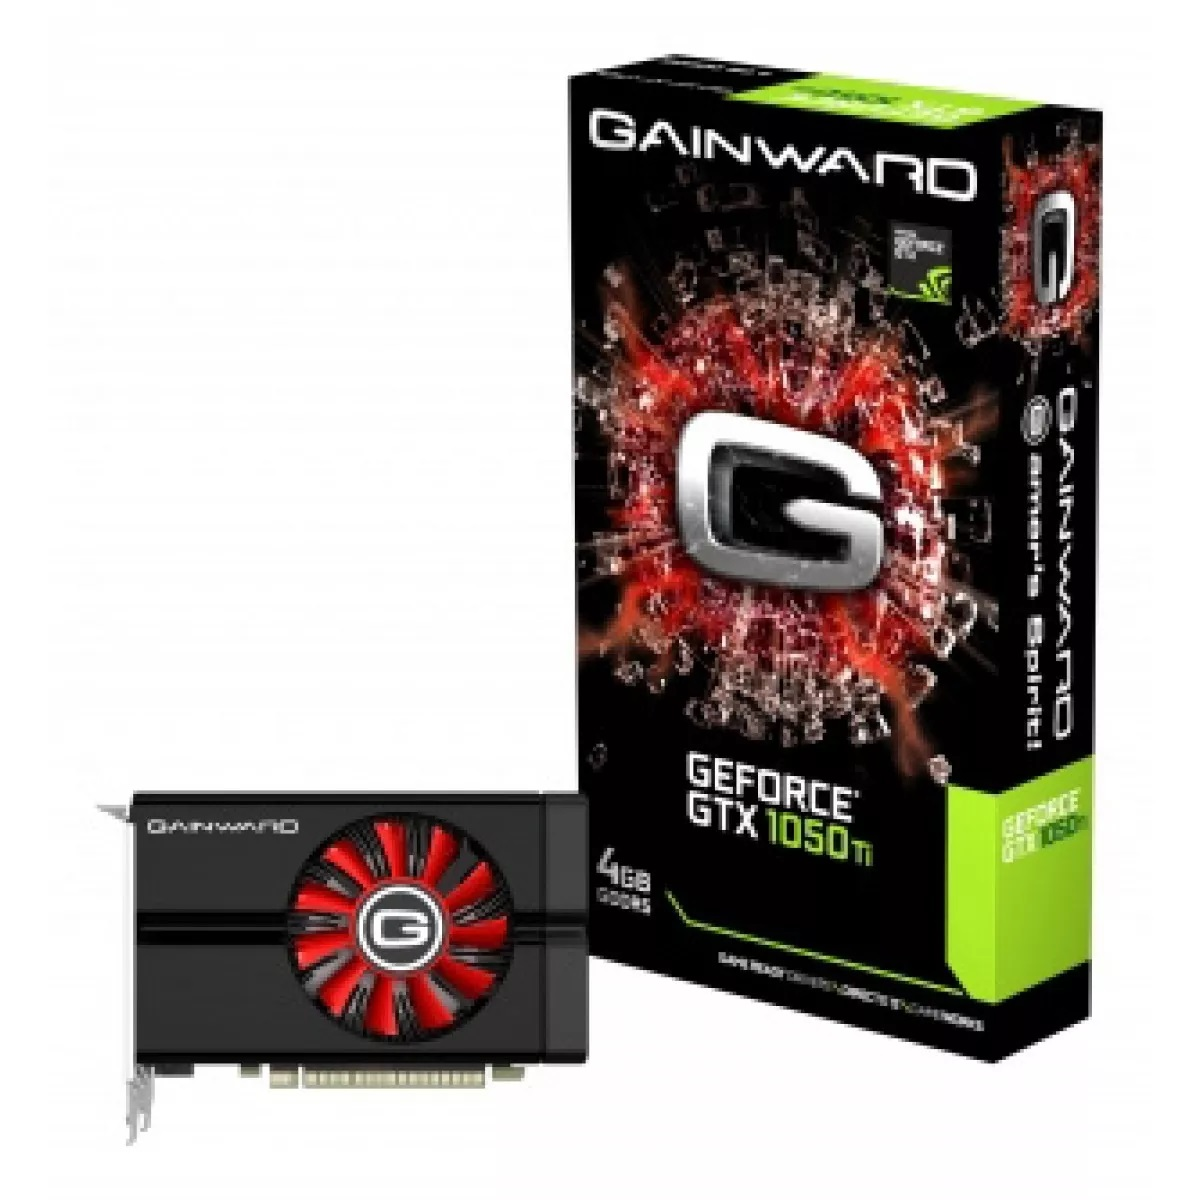 Placa De Video Gtx 1050 2gb Ddr5 128bit Ne5105001841-1070f Gainward